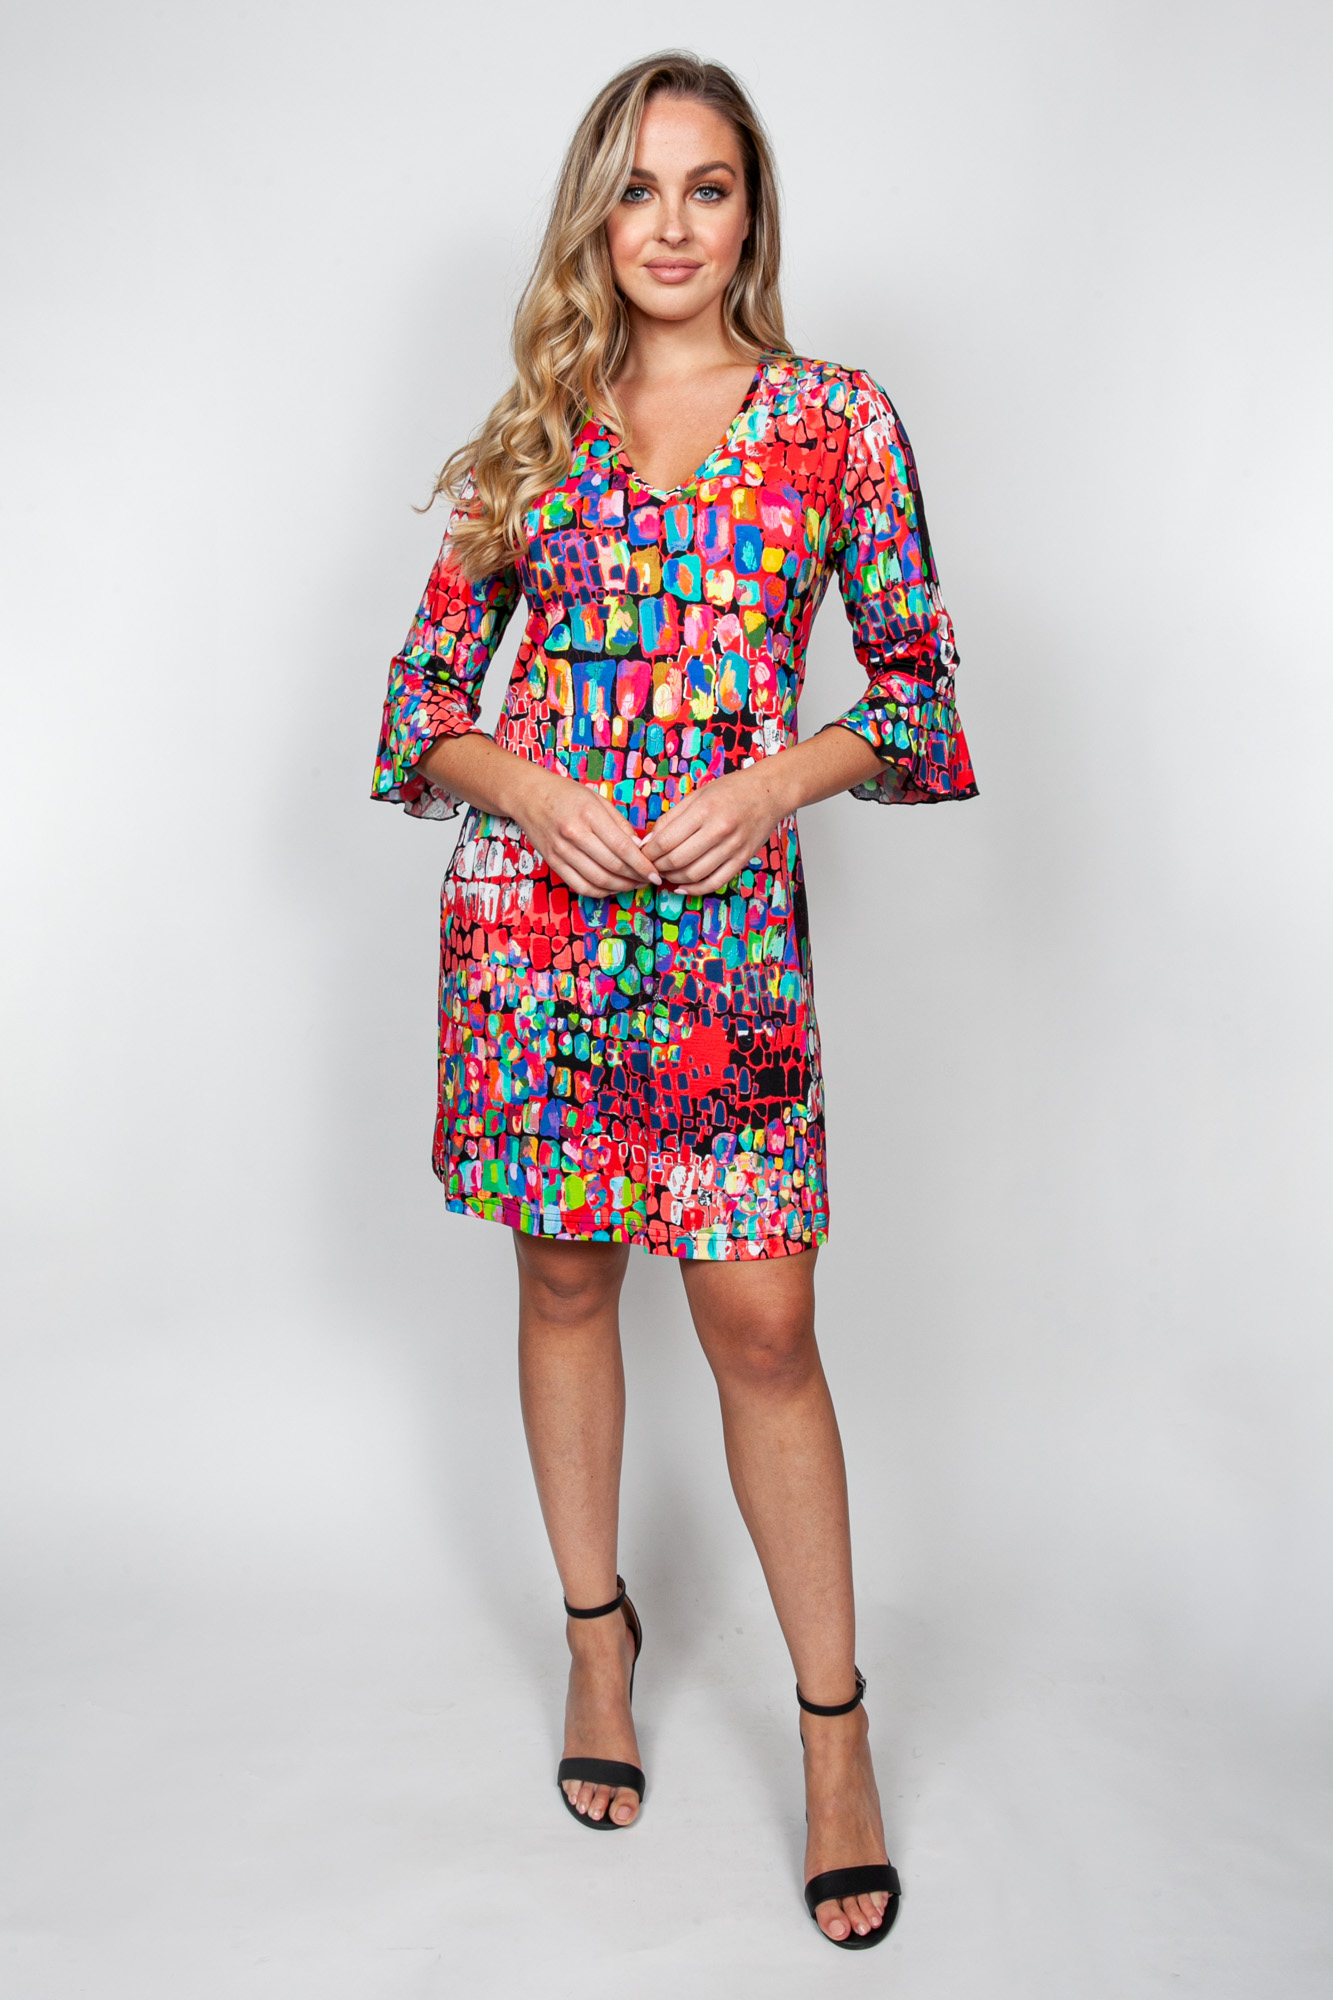 Style # 44516-20, p 7 Viscose Prints Print: Gems + 4 others